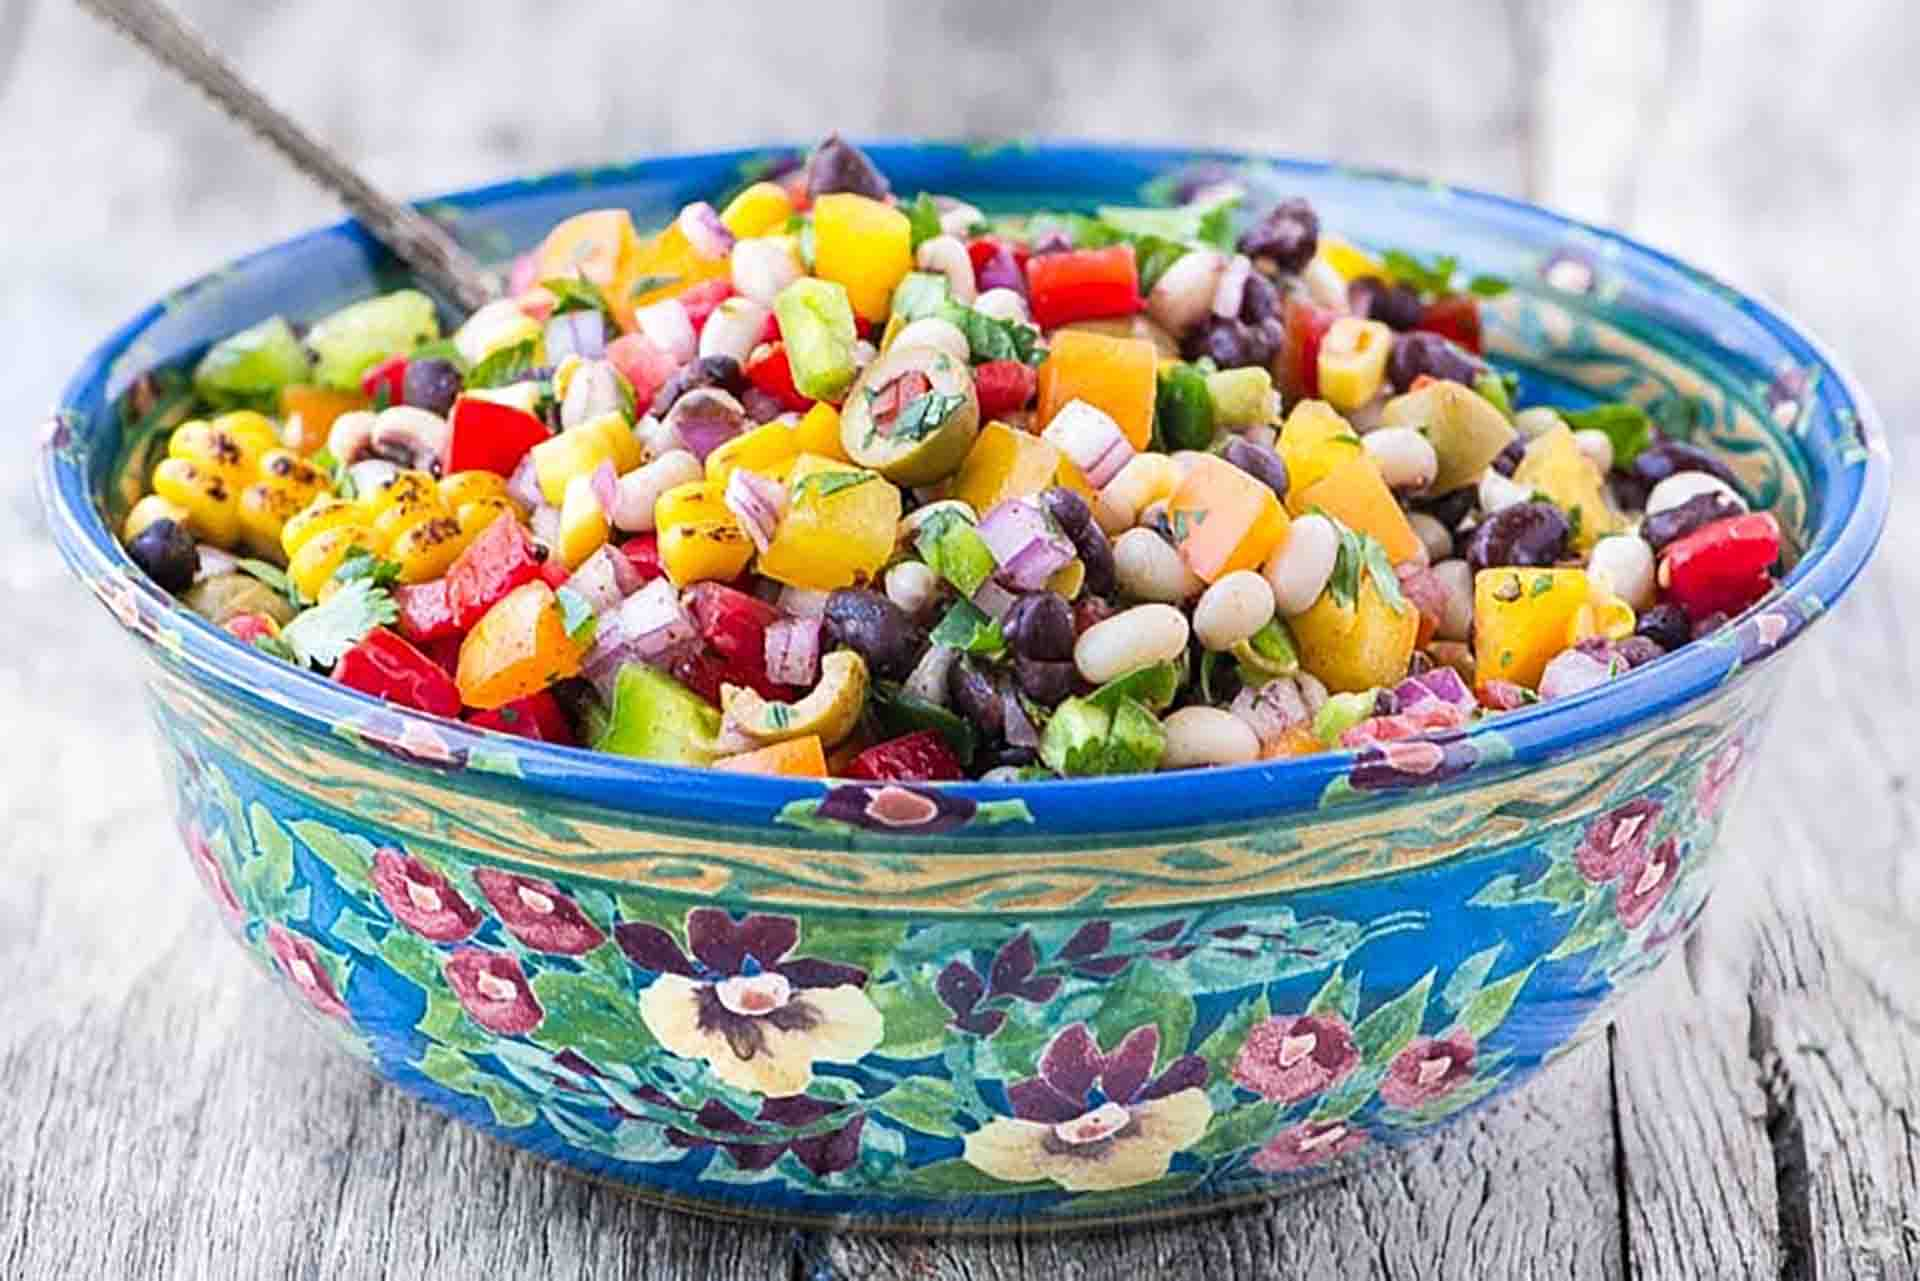 Corn and bean salad in a colorful bowl sitting on a wooden table.